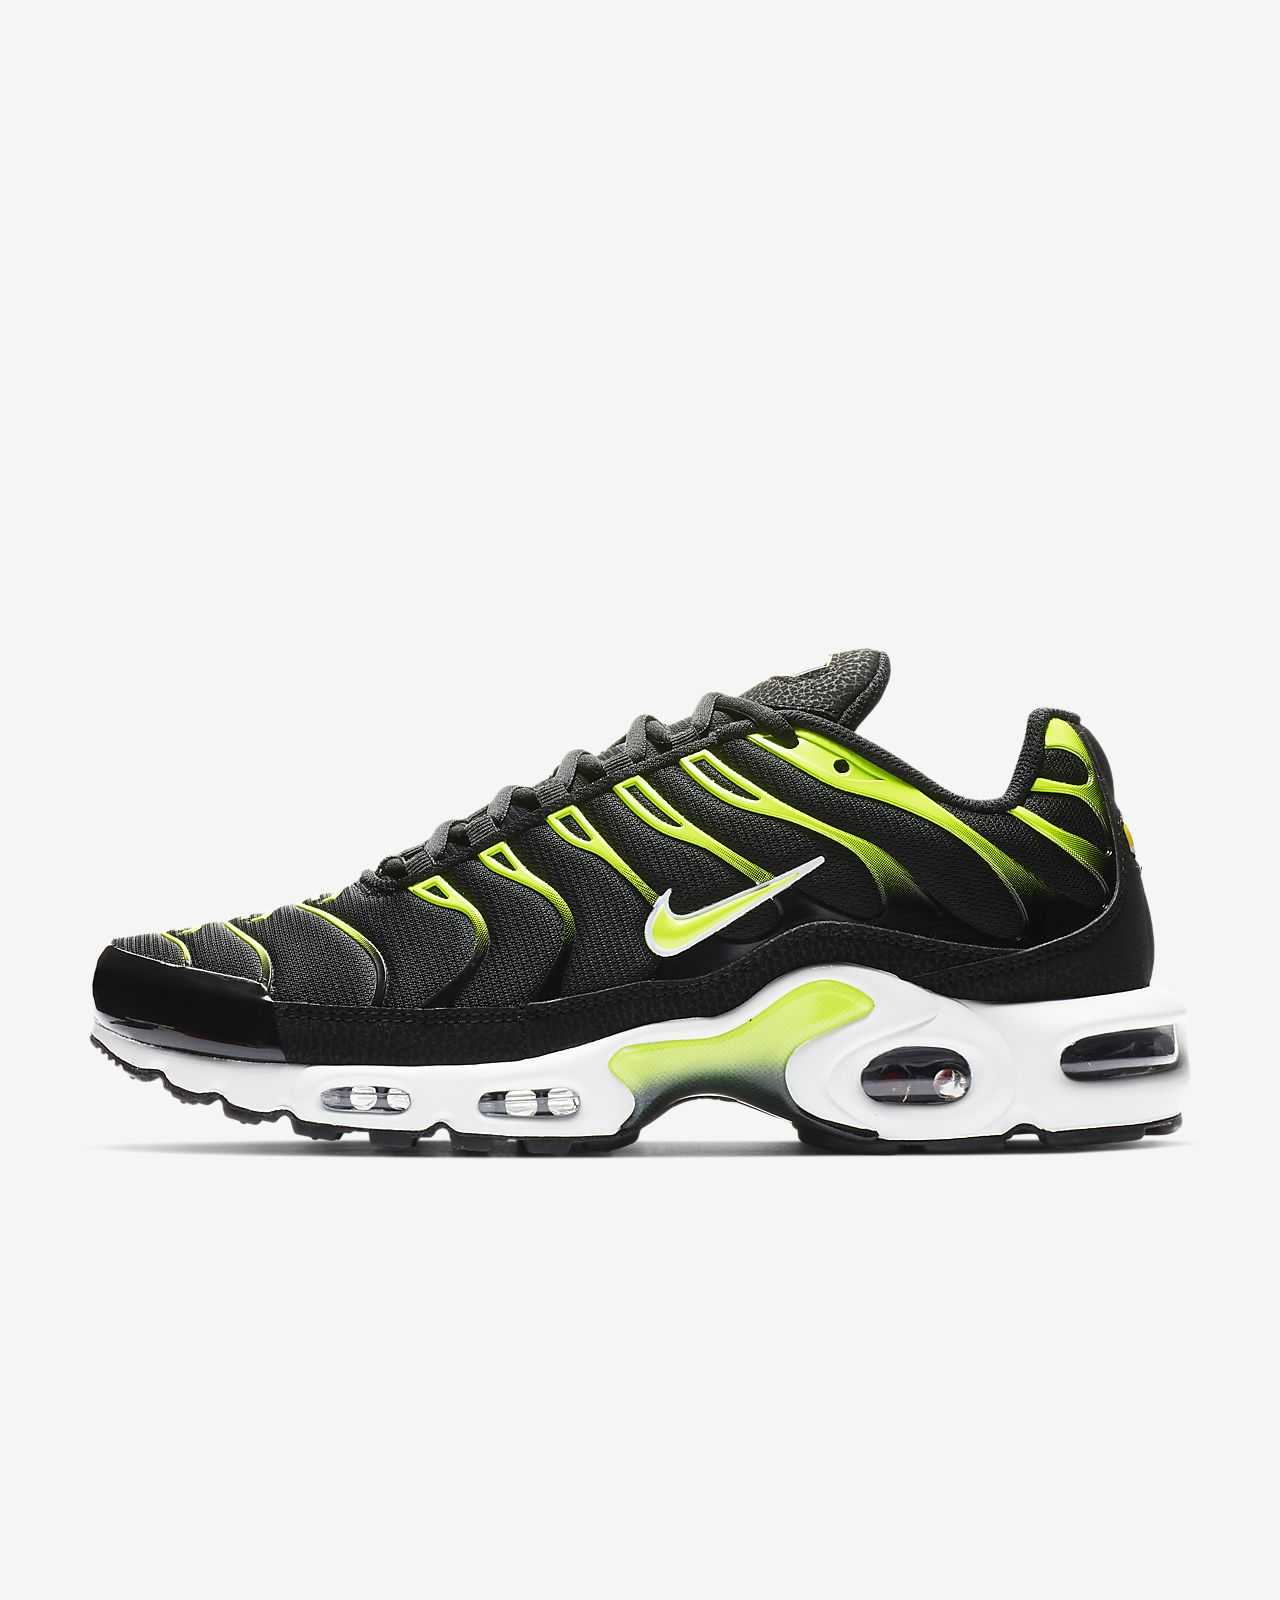 3877b0c9f82b18 Nike Air Max Plus Men s Shoe. Nike.com ZA